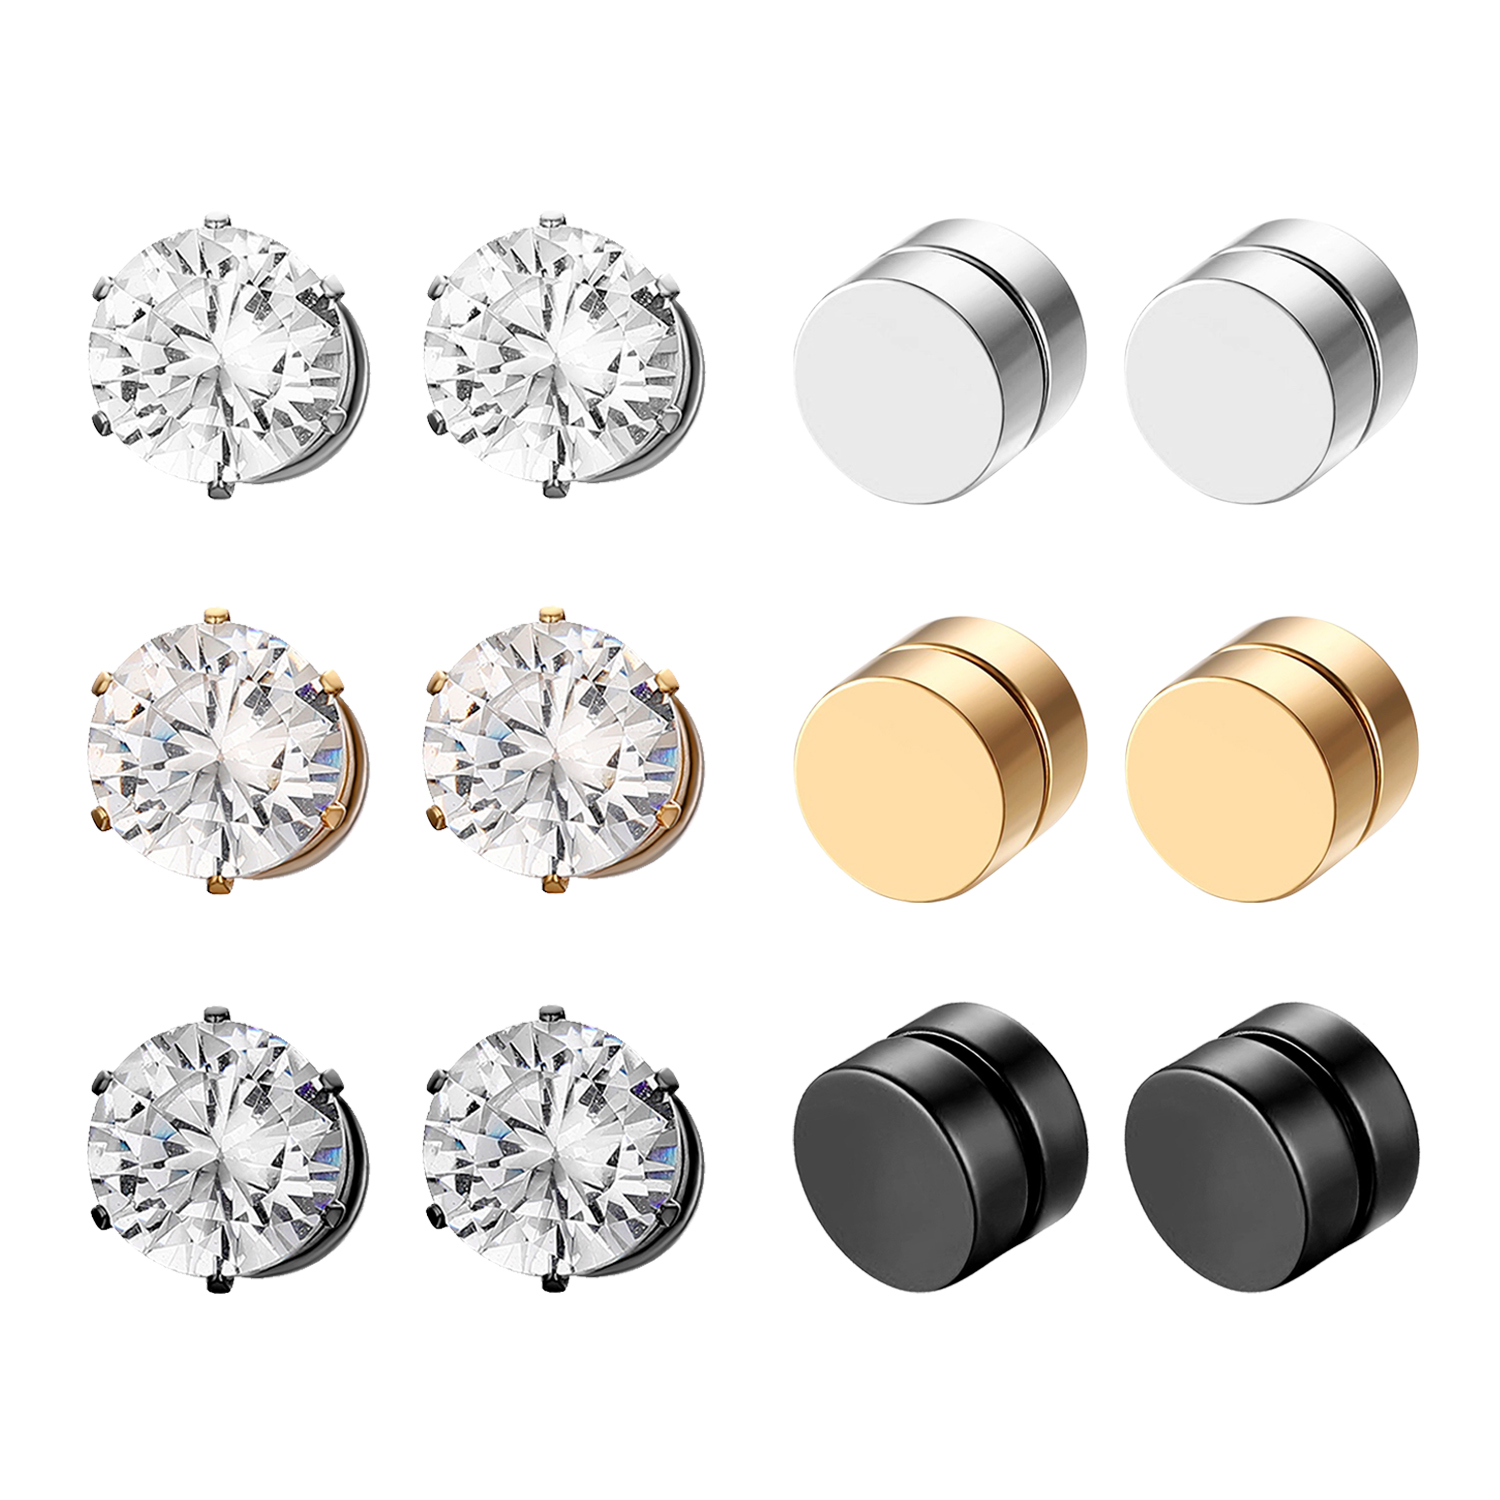 BONISKISS Stainless Steel Stud <font><b>Earrings</b></font> <font><b>for</b></font> <font><b>Men</b></font> Women <font><b>Unisex</b></font> Round Magnet <font><b>Earrings</b></font> Without Piercing fashion jewelry 2020 image